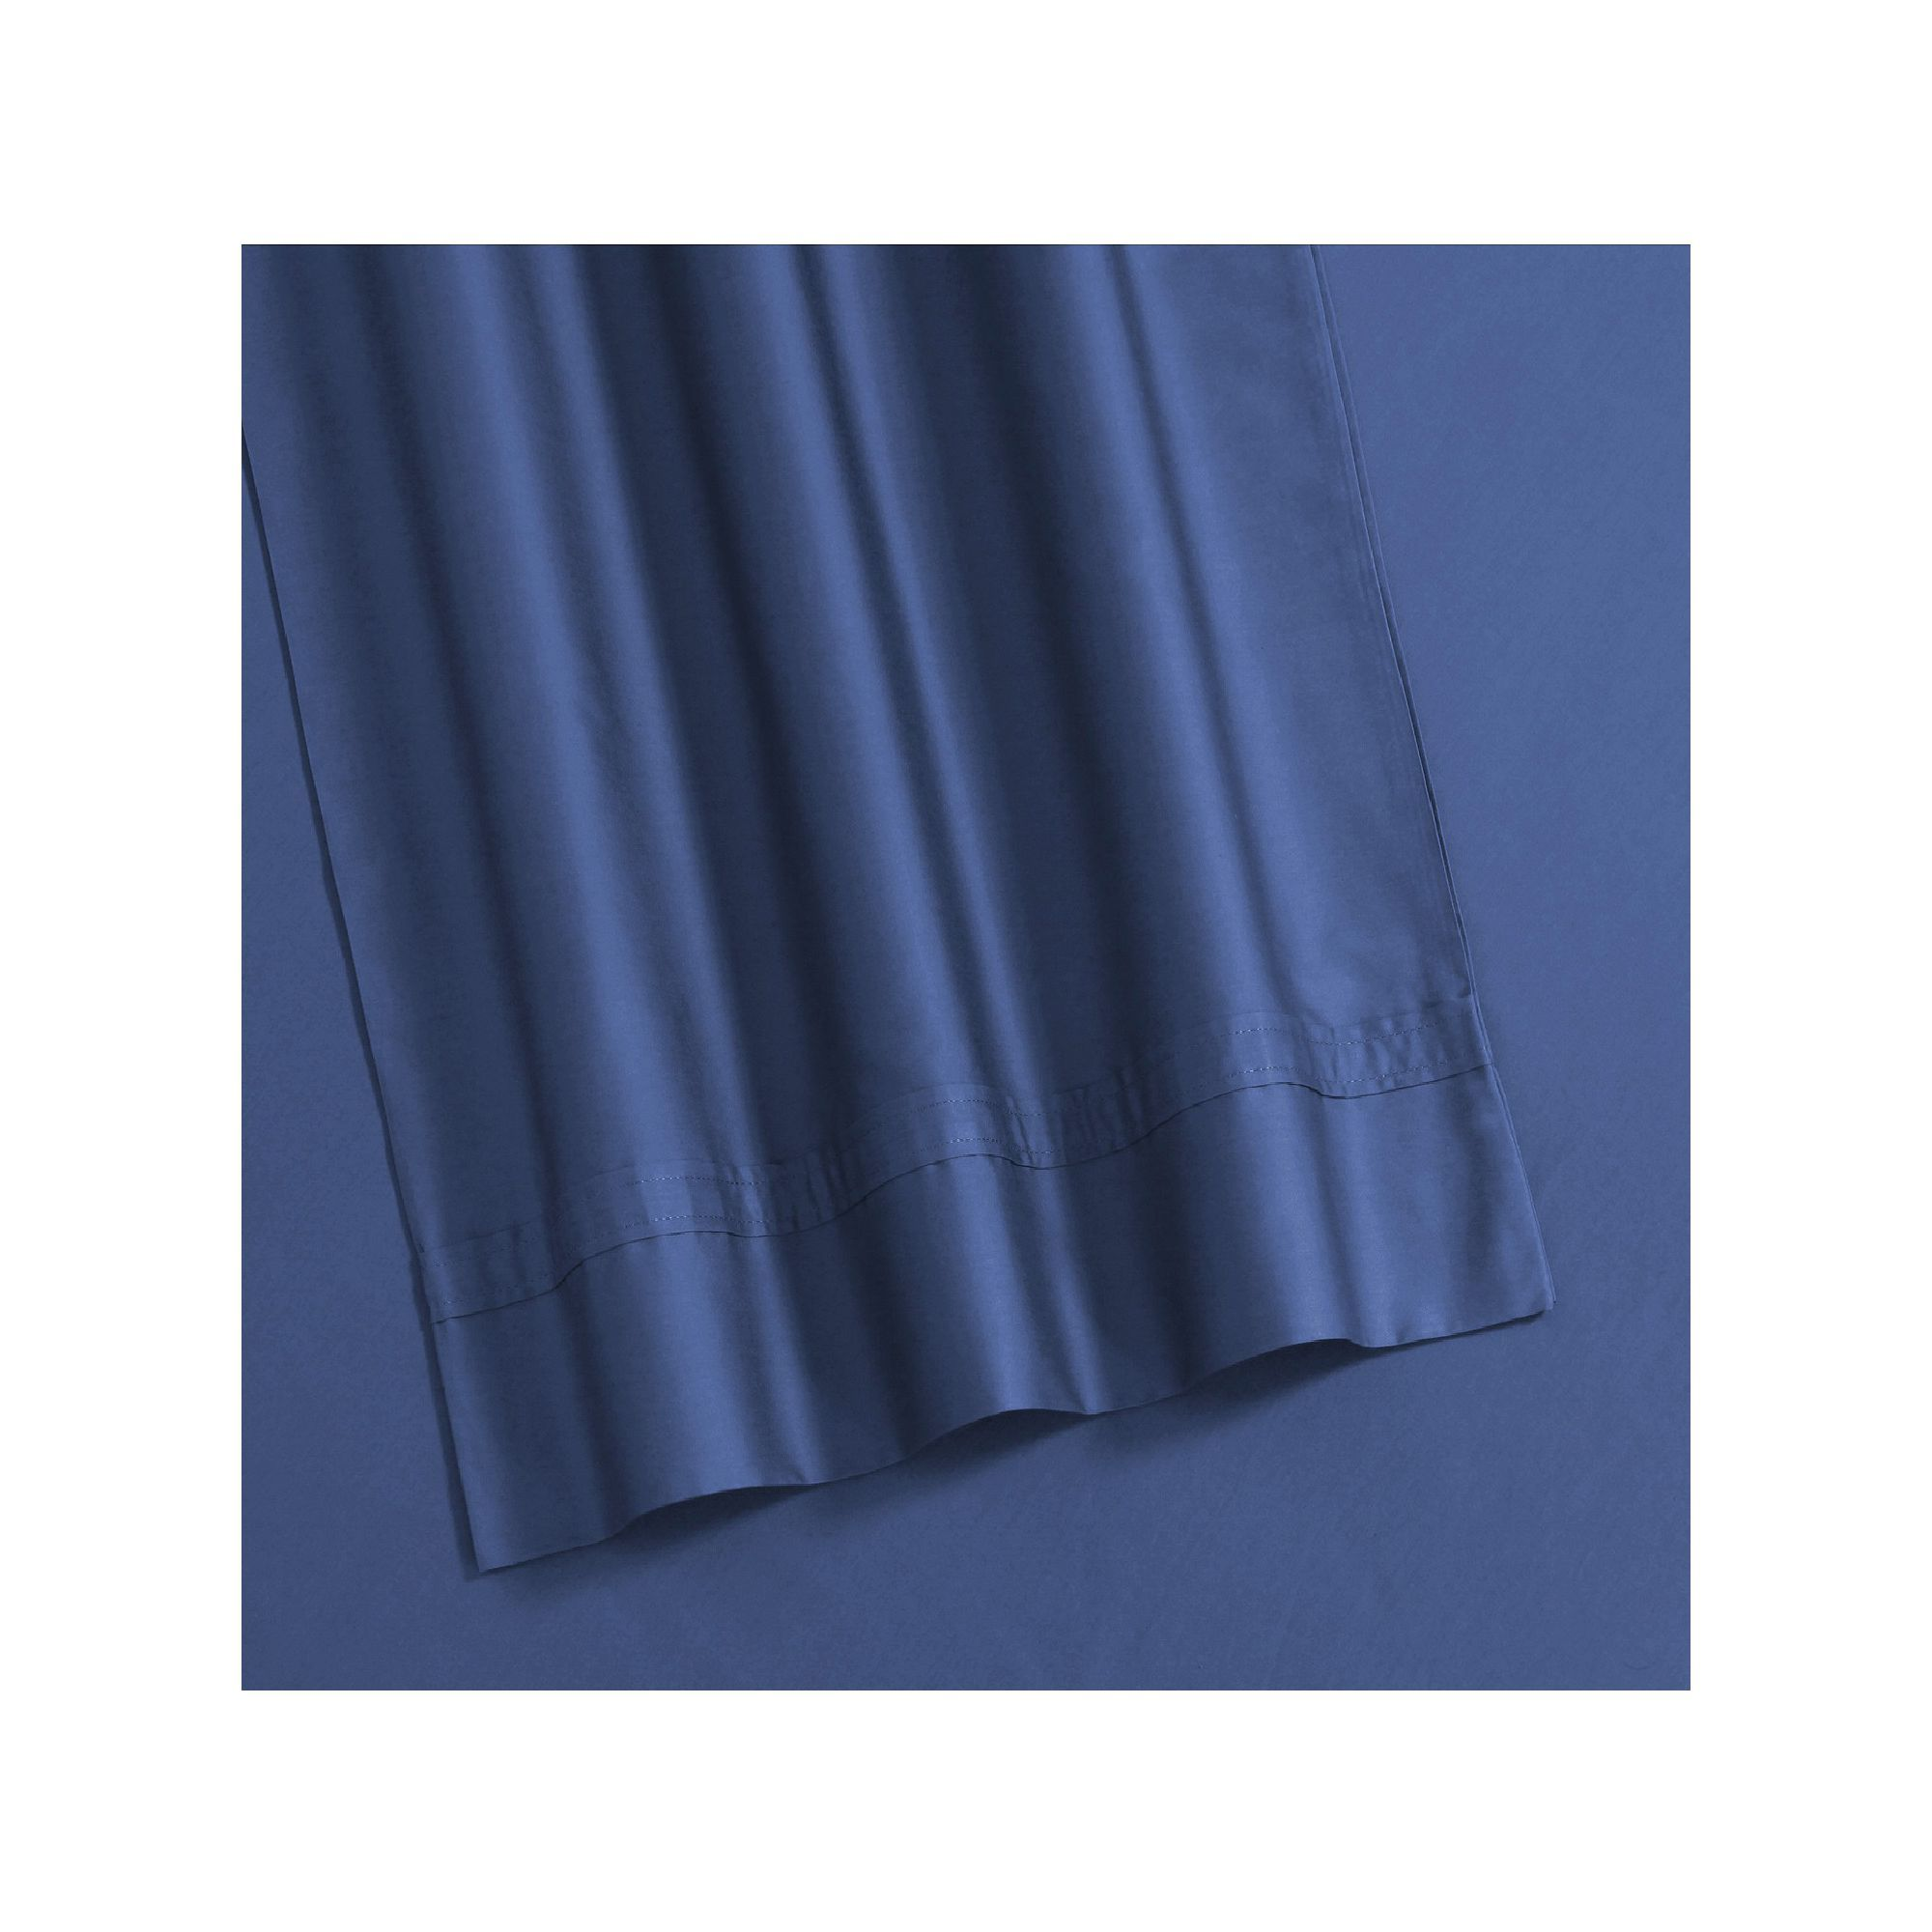 Egyptian Cotton 500 Thread Count Fitted Sheet, Blue Cal King